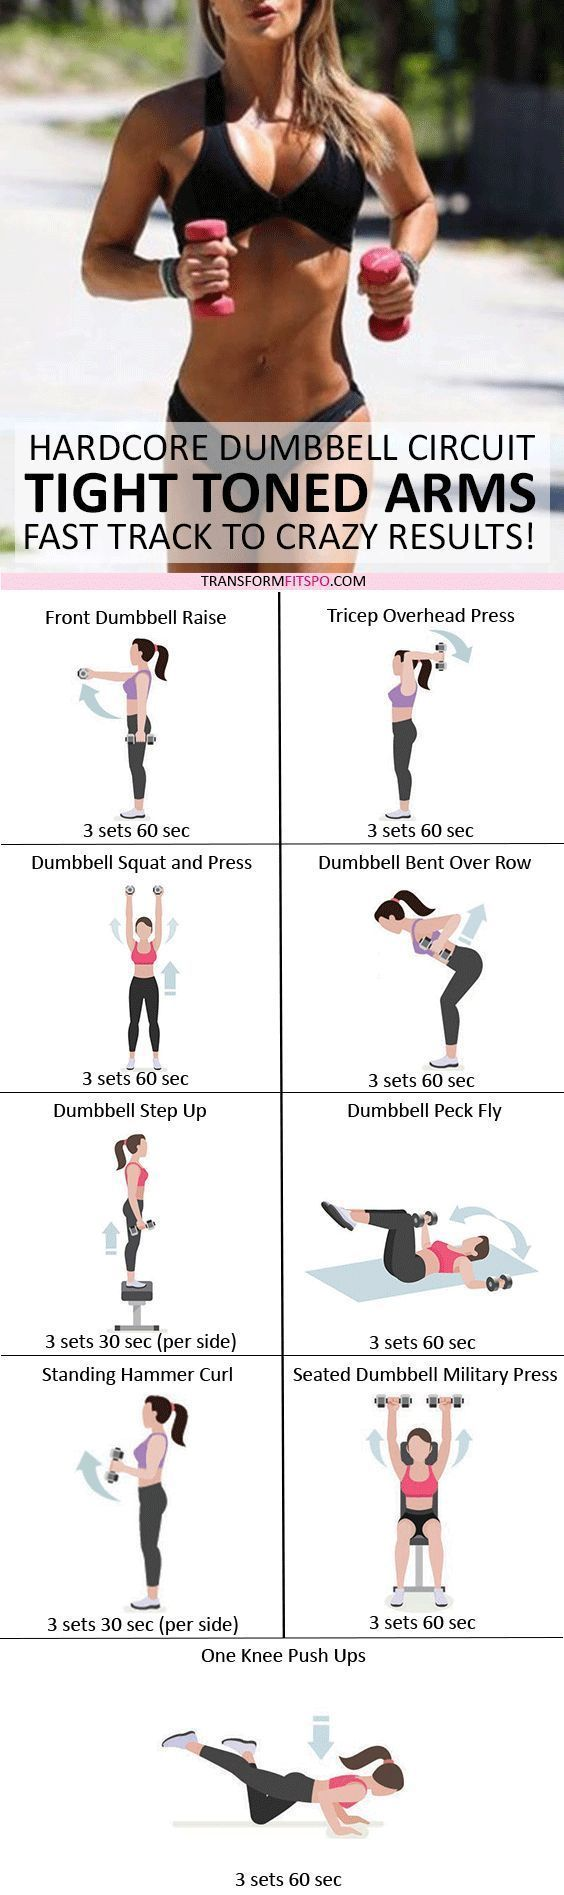 Get physical by grabbing a dumbbell to tone up those arms!Front Dumbbell RaiseFront raises will work your trap #fitness #fitnessmotivation #fitnessmodel #fitnessaddict #fitnessgirl #fitnessjourney #fitnesslifestyle #fitnesslife #fitnessfreak #fitnessgoals #fitnessgear #fitnessfood #fitnessinspiration #fitnessgirls #fitnessbody